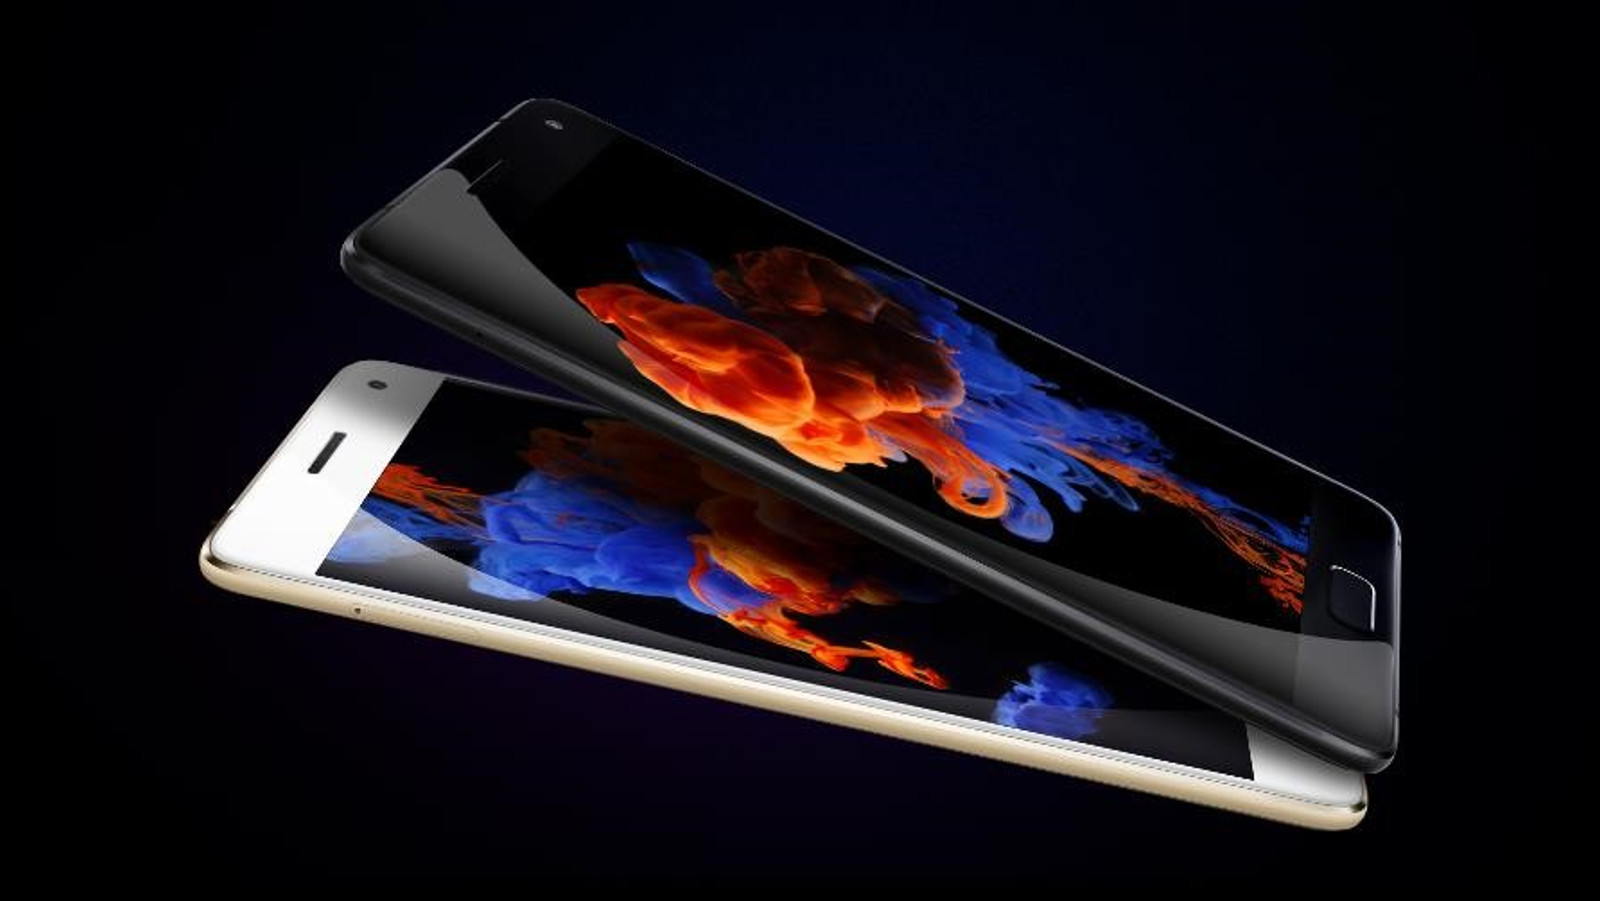 zuk-edge-would-be-unveiled-next-week